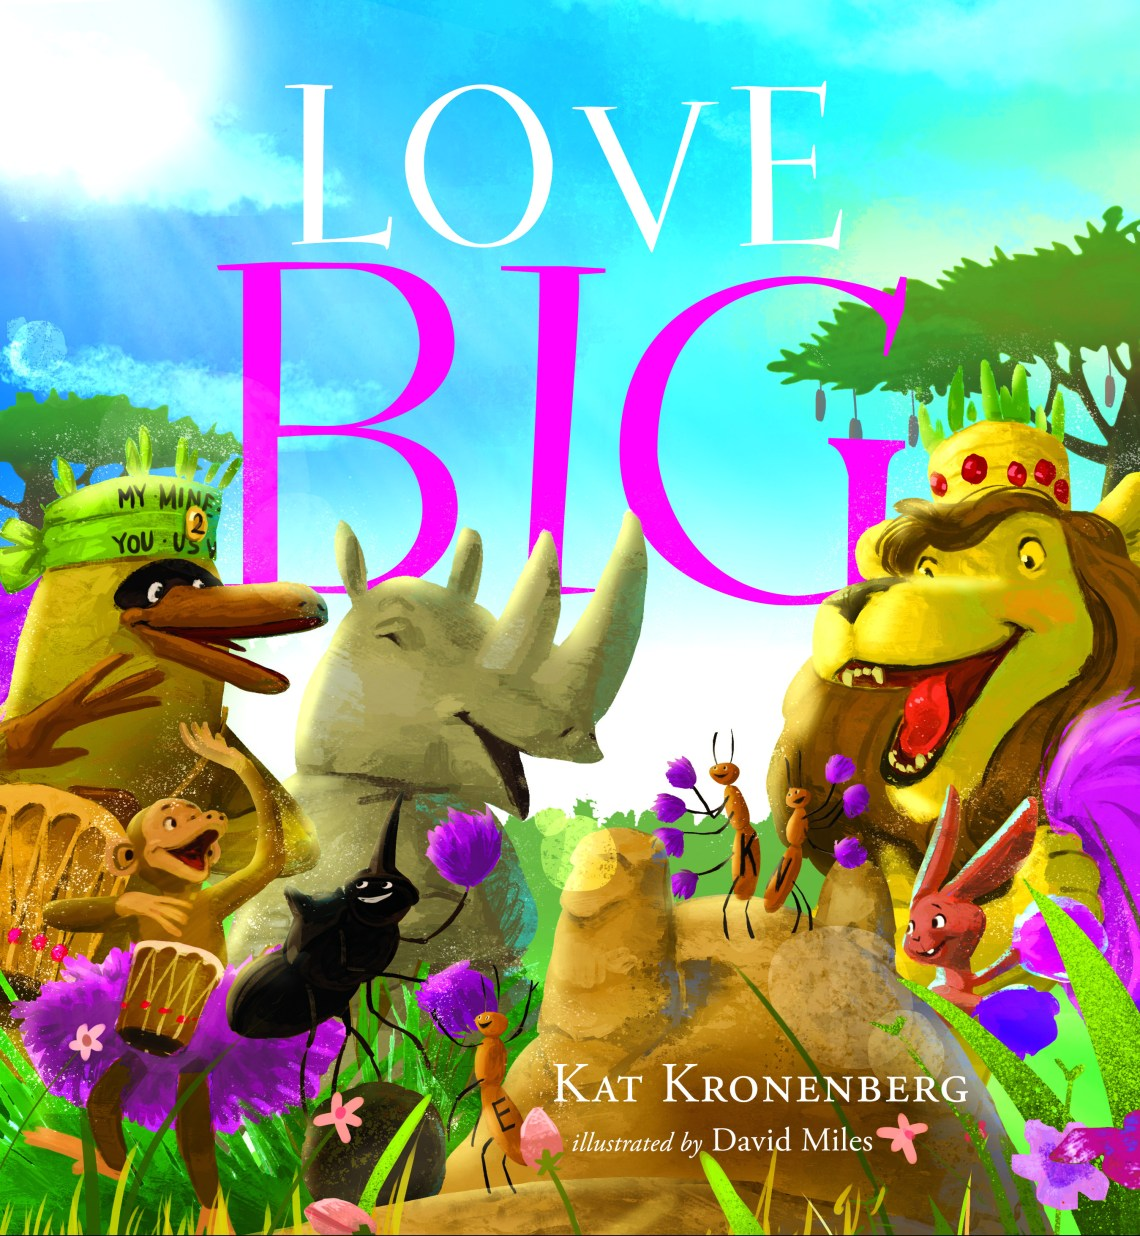 Love Big by Kat Kronenburg